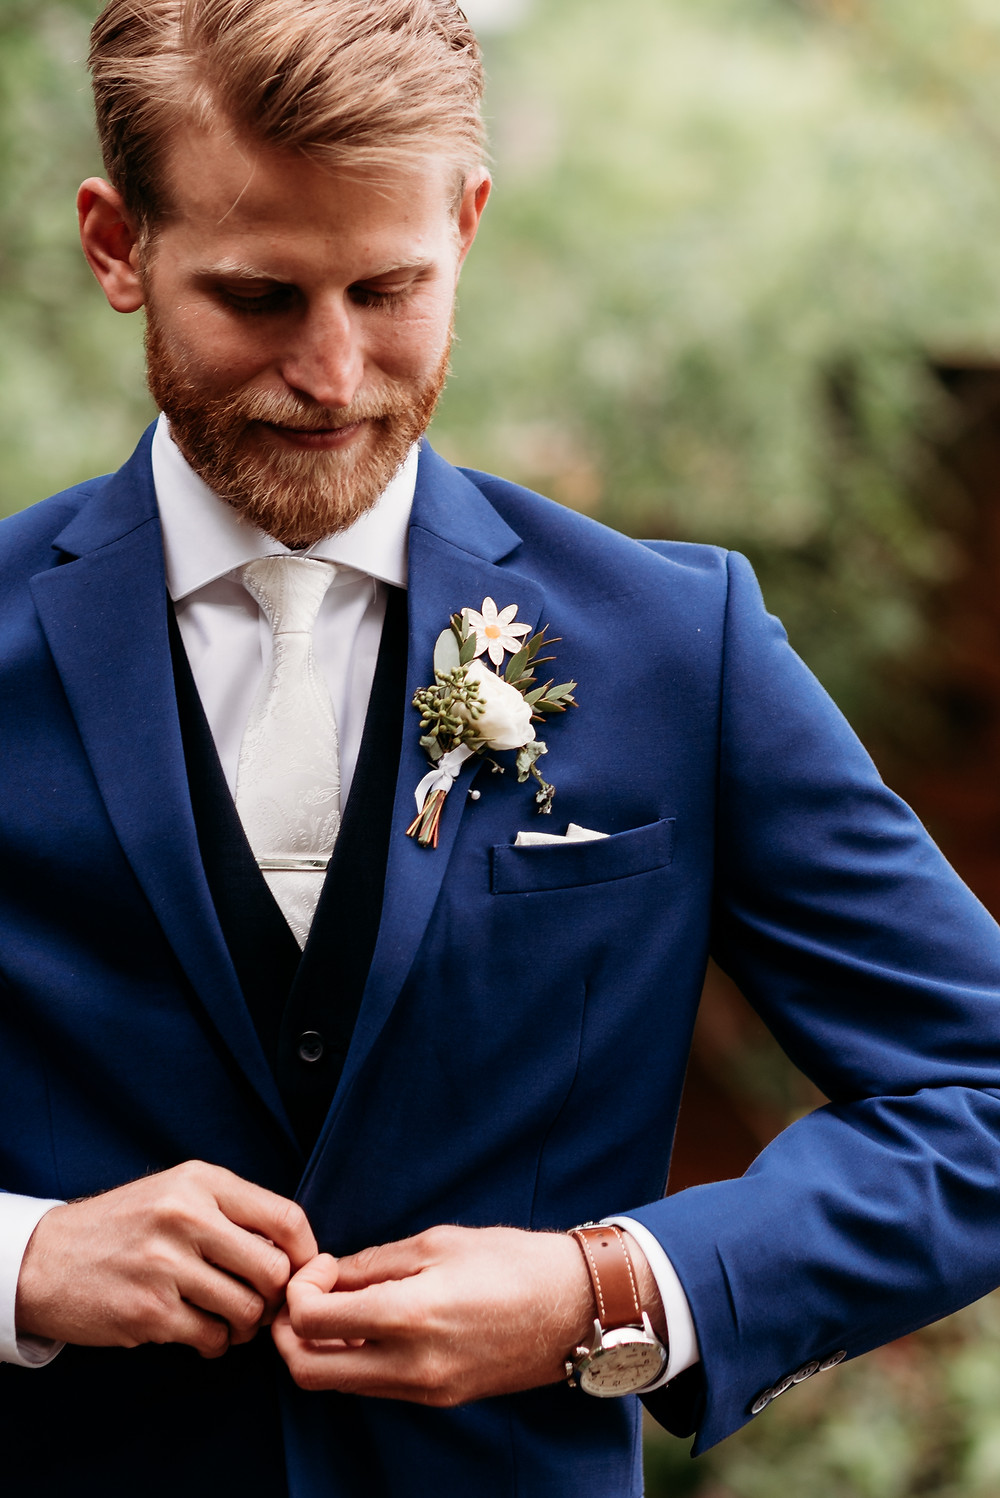 groom buttoning suit coat